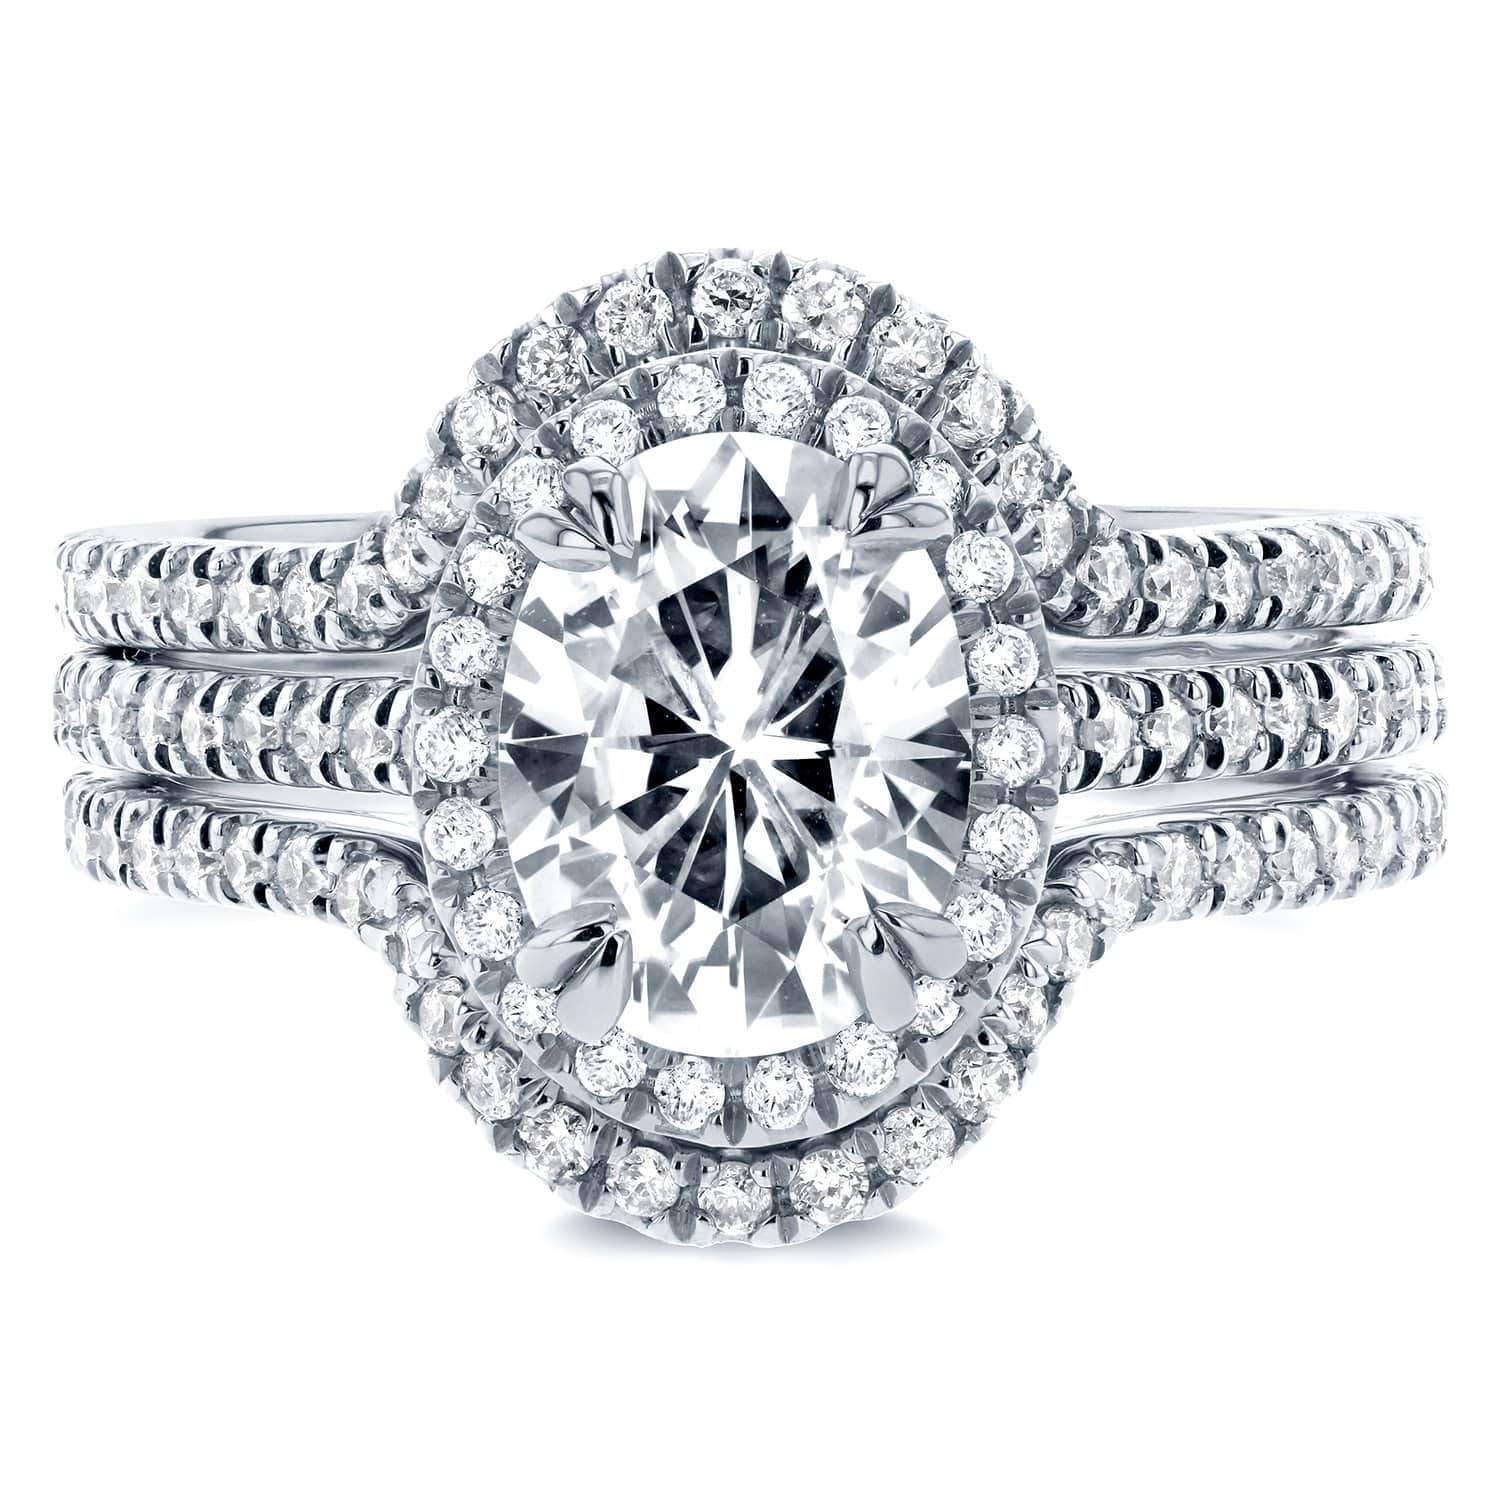 Coupons Oval Moissanite and Lab Grown Diamond Halo 3pc Bridal Rings Set 2 1/4 CTW 14k White Gold (HI/VS DEF/VS) - 7